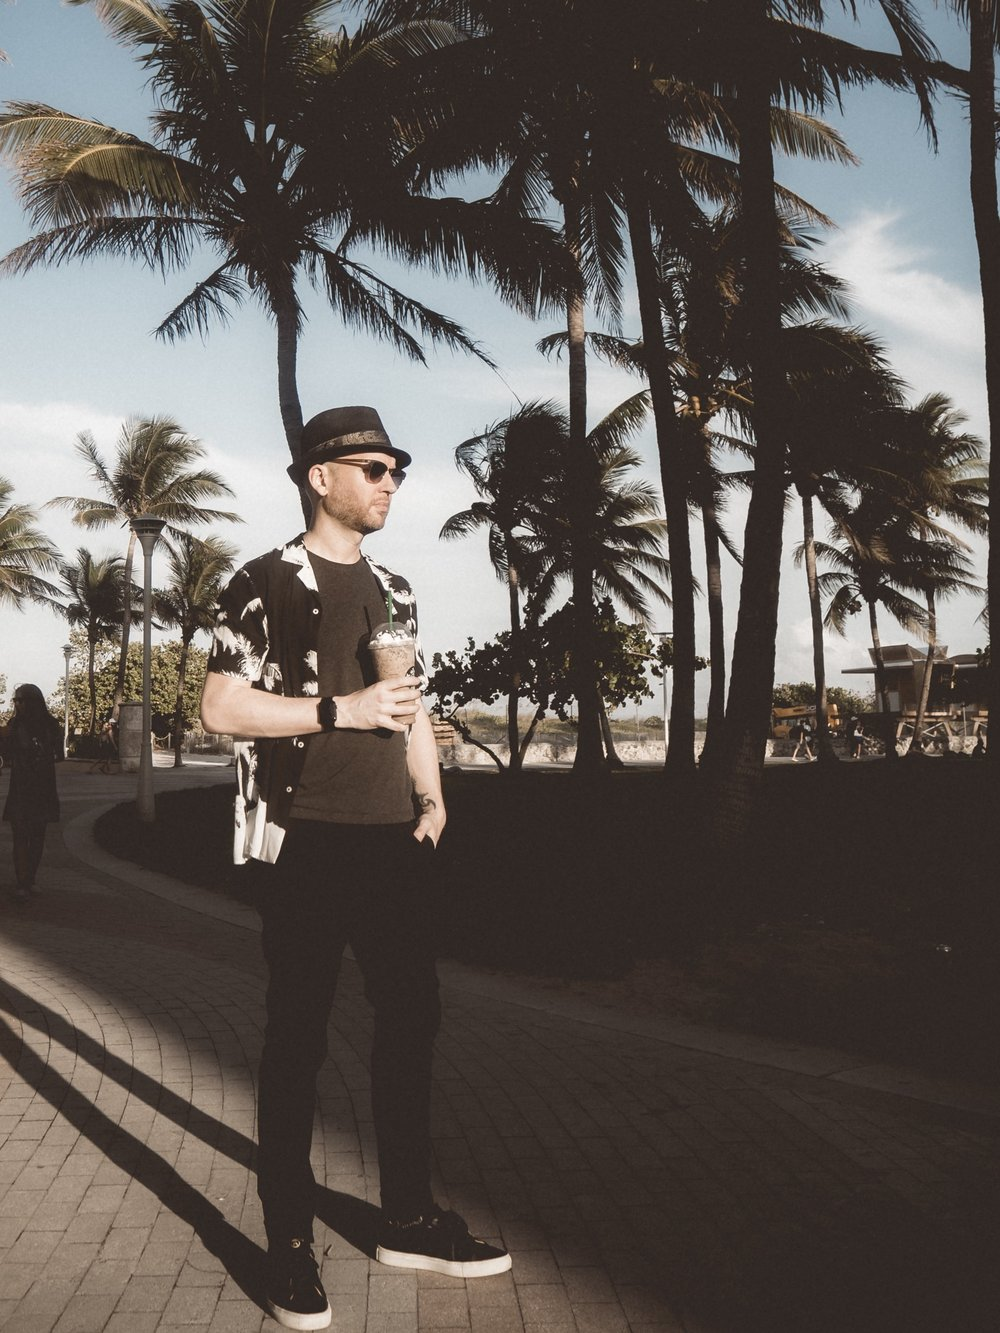 Jay McLaughlin Miami South Beach USA Palm Trees Summer Davidoff Cool Water Wave Review Starbucks Chocolate Frappacino Hat Monochrome Menswear